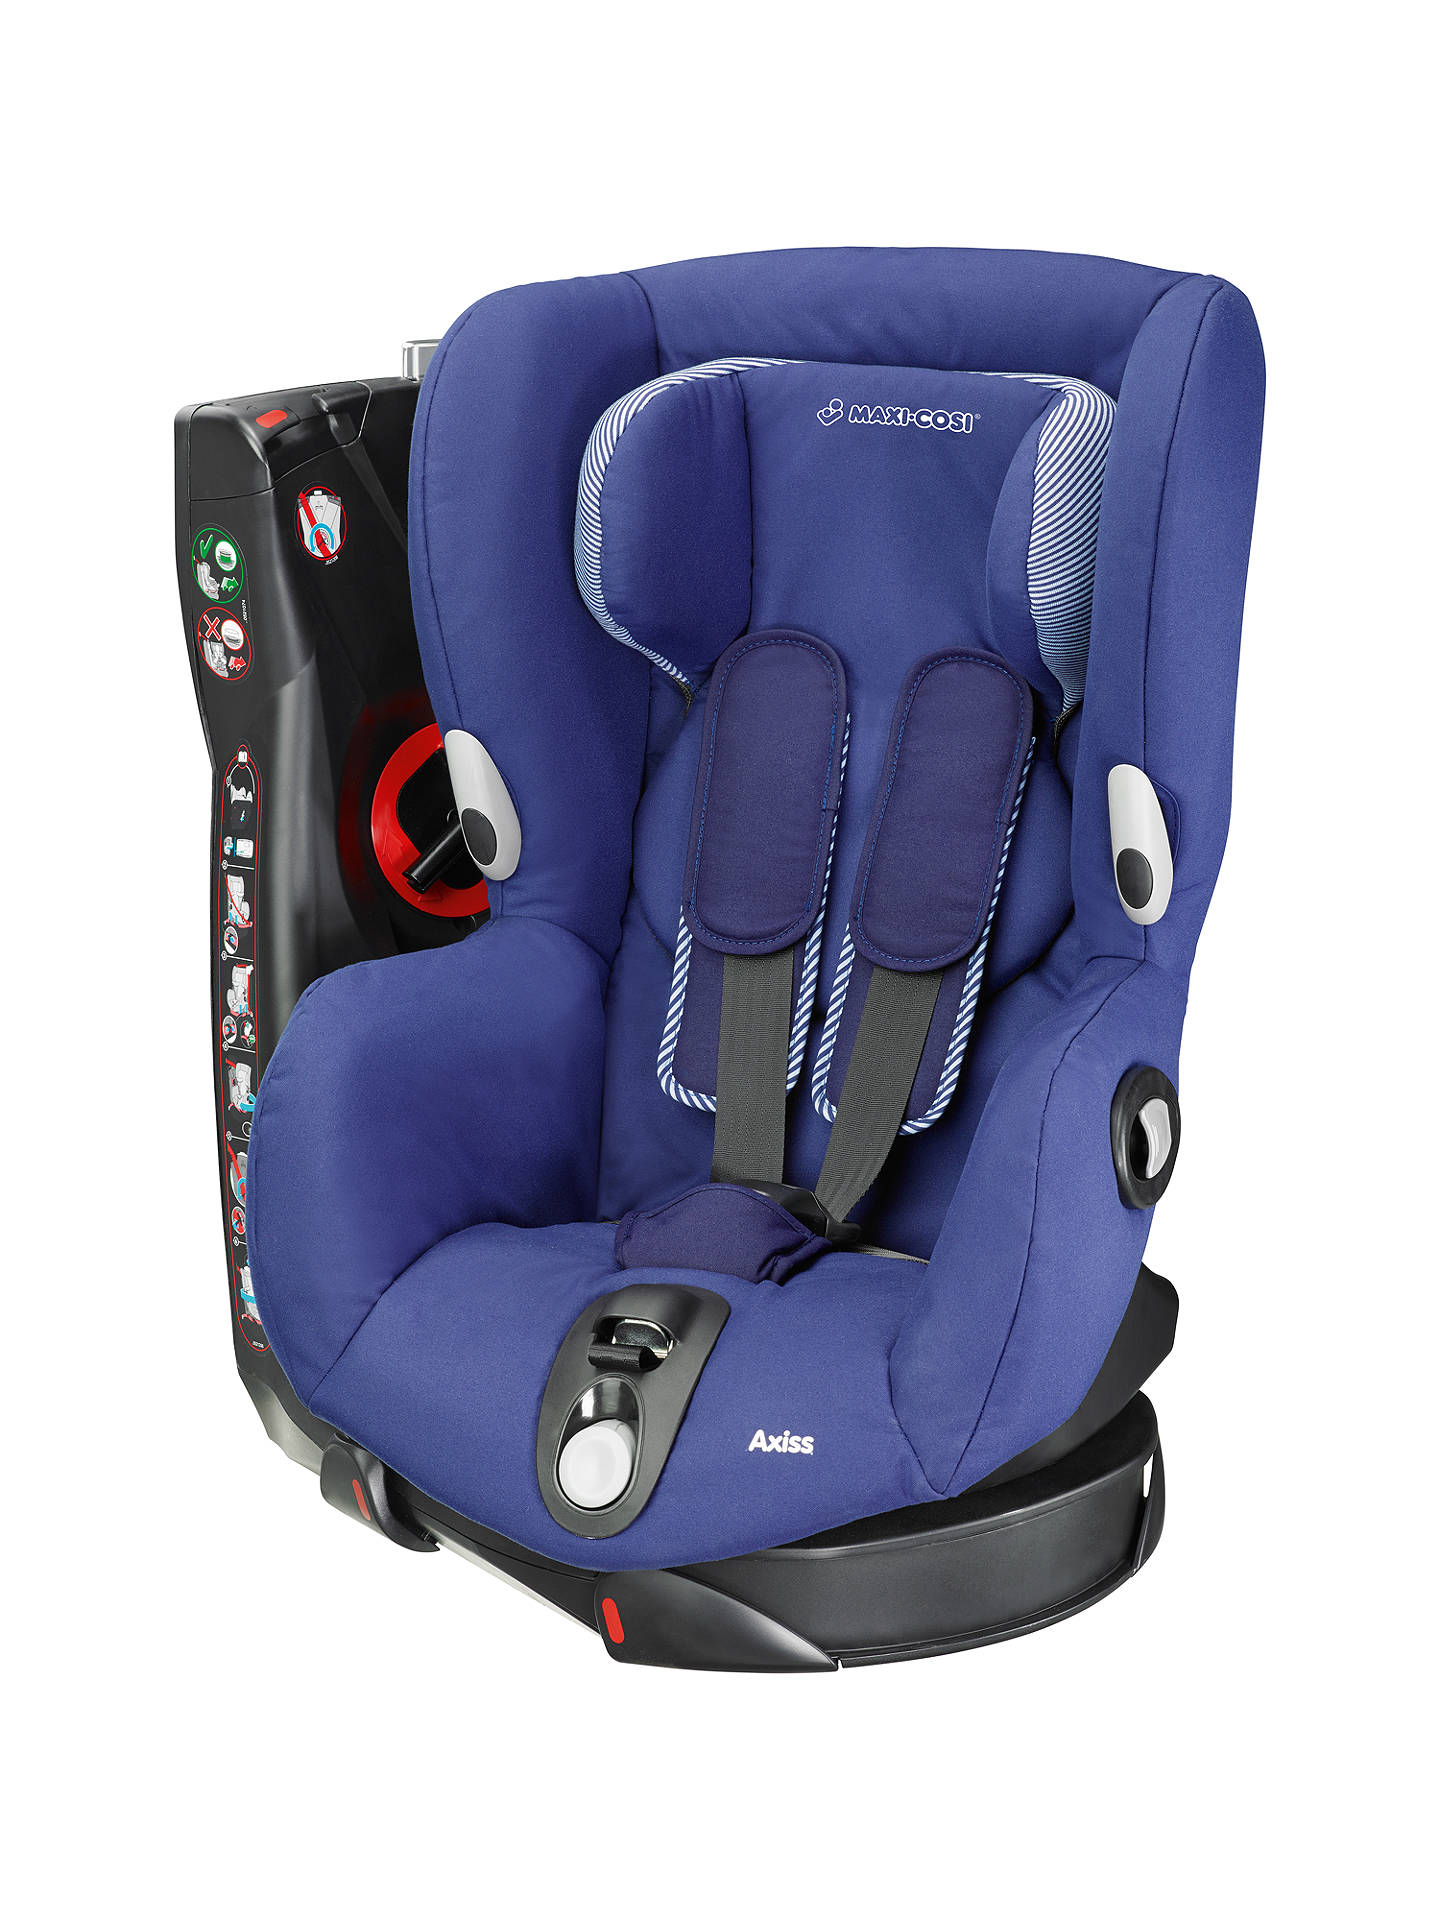 maxi cosi axiss group 1 car seat river blue at john lewis partners. Black Bedroom Furniture Sets. Home Design Ideas